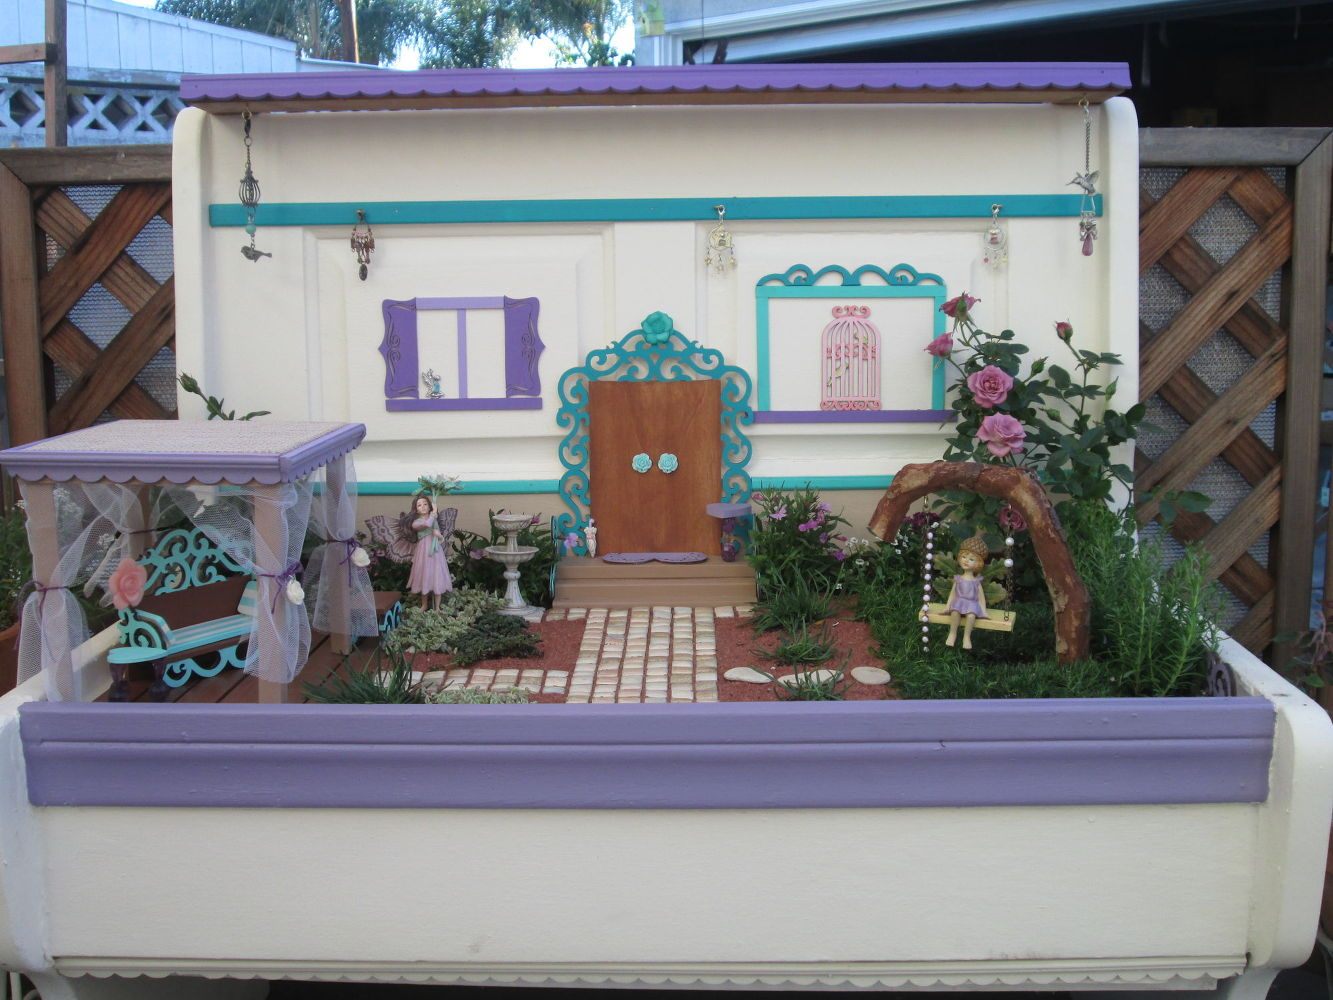 15 Whimsical Ways To Use Old Furniture In Your Flower Bed Hometalk